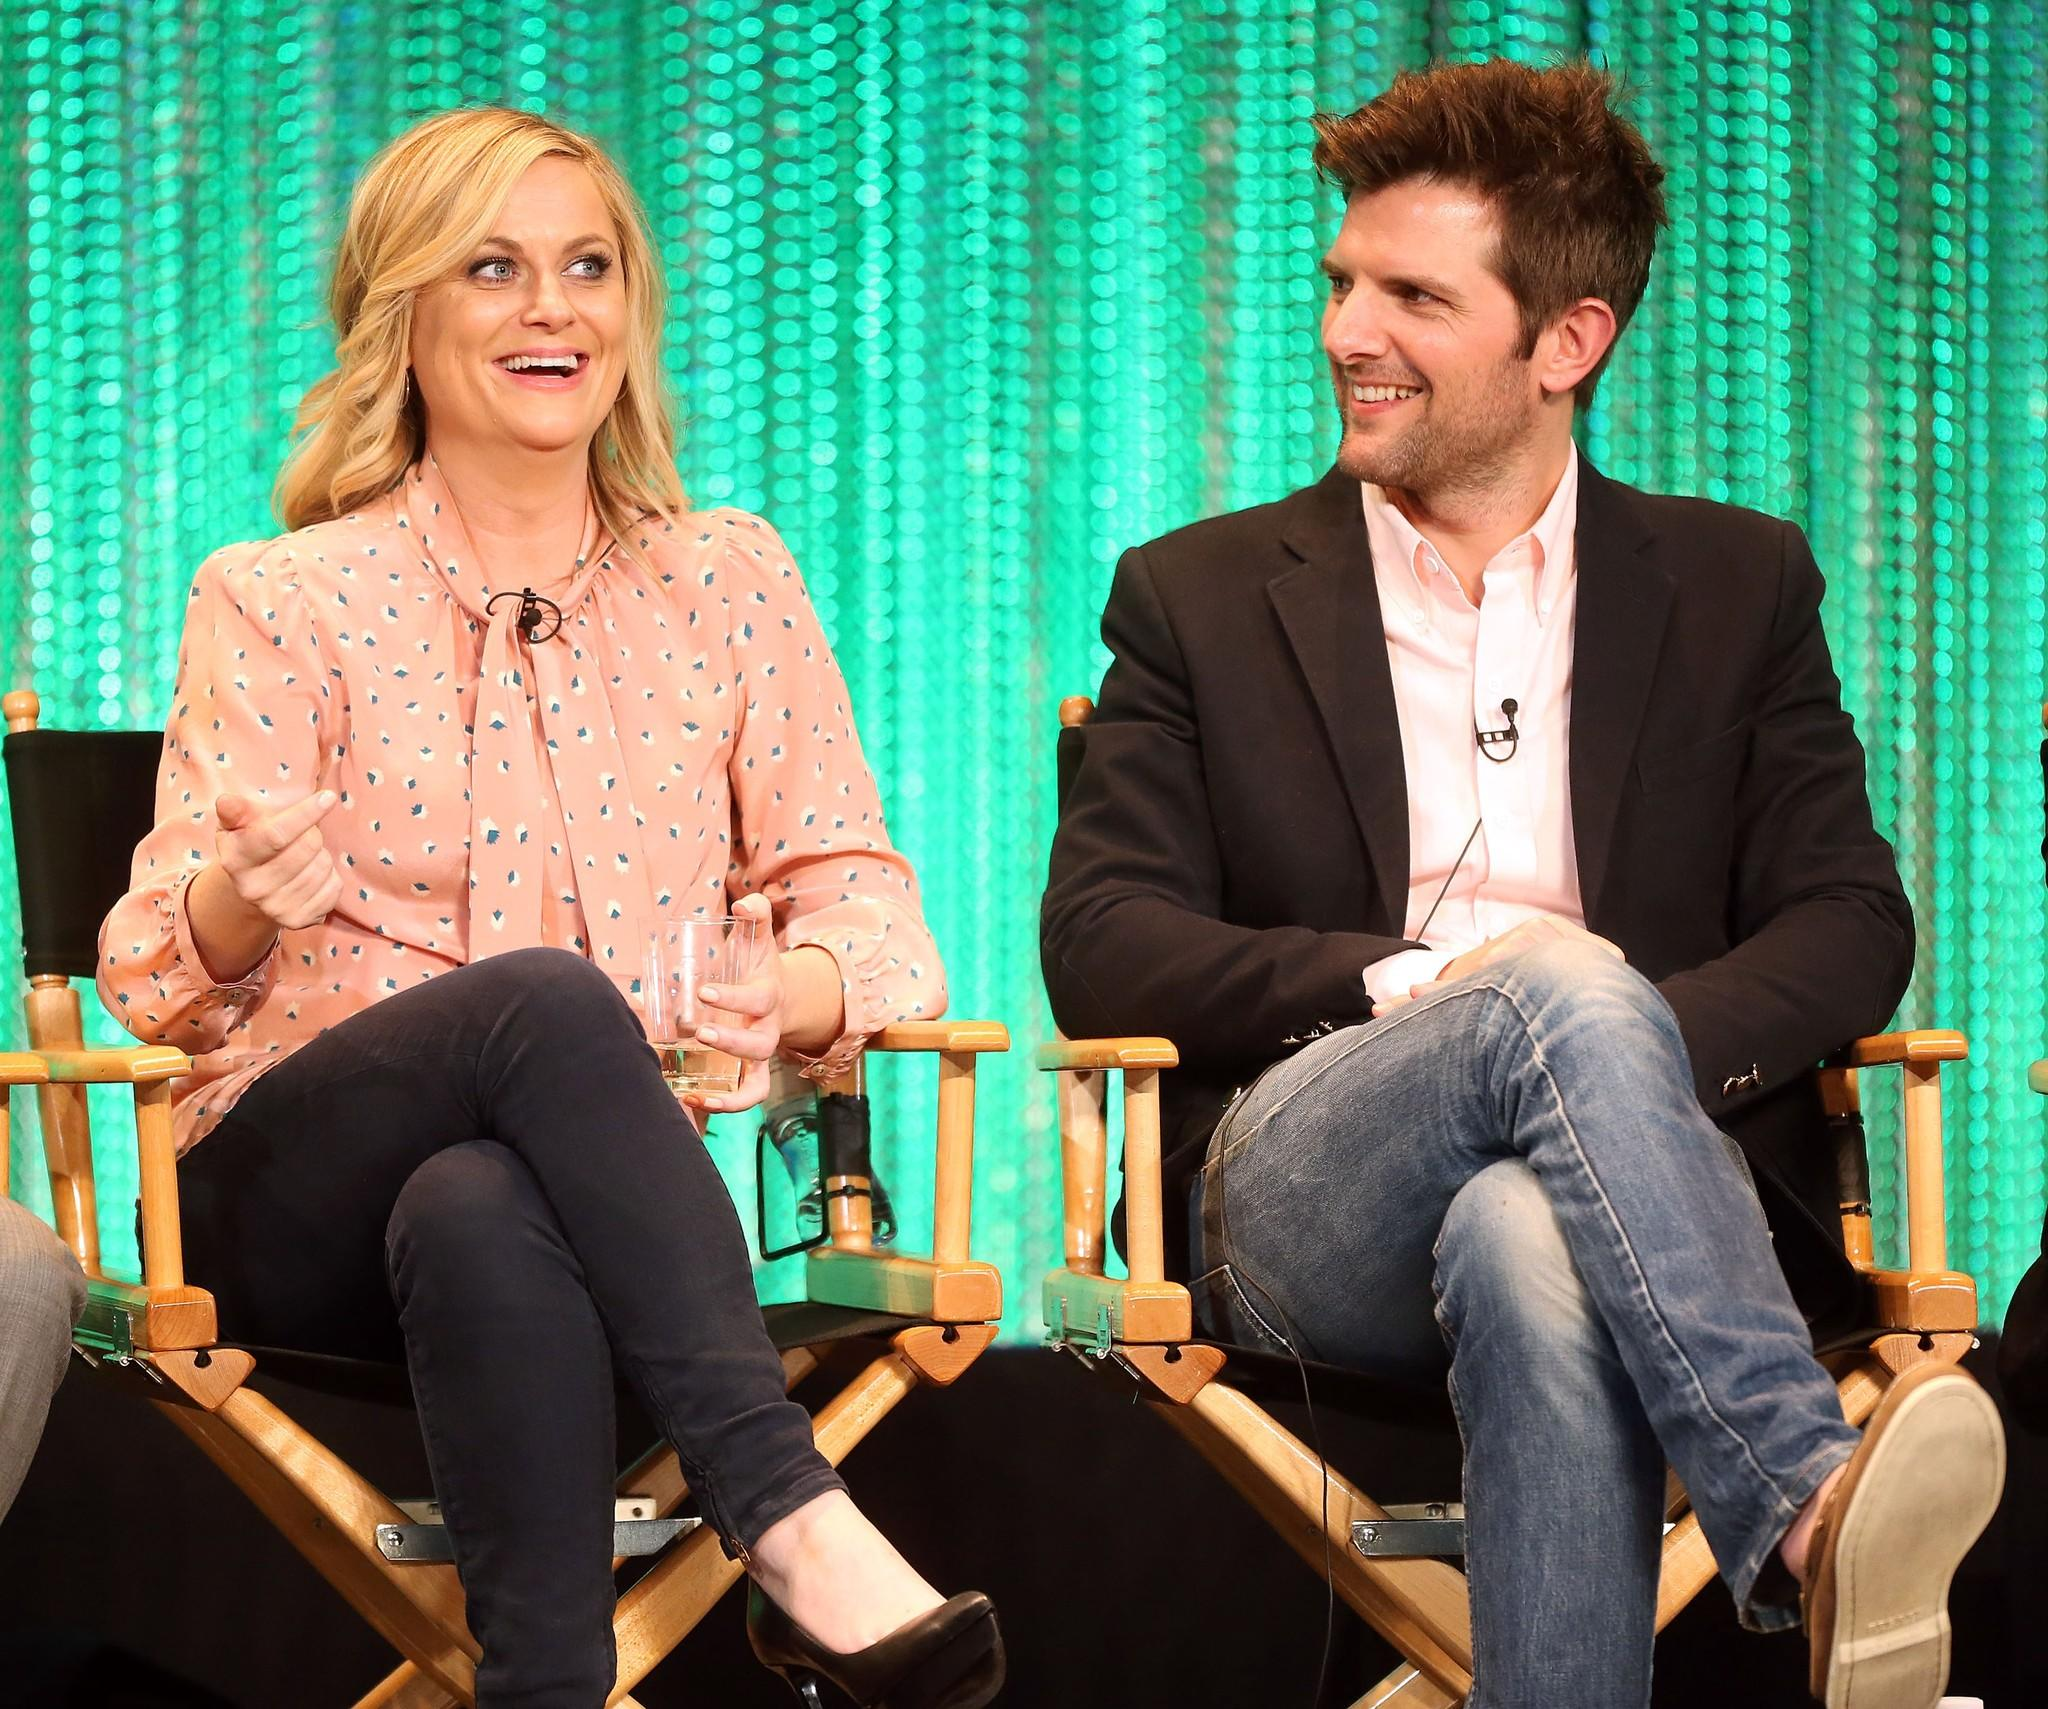 """Parks and Recreation"" stars Amy Poehler, left, and actor Adam Scott will be part of NBC's advisory board enlisted to help find the network's next comedy projects."